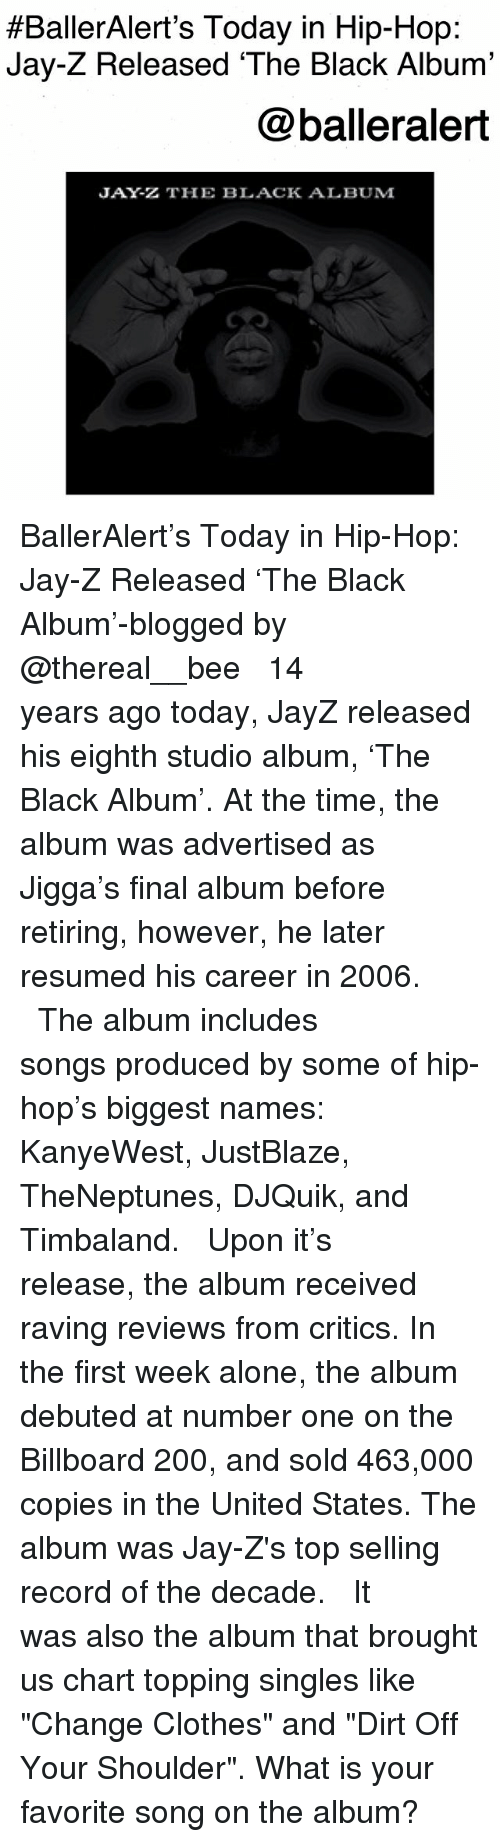 """debuted:  #BallerAlert's Today in Hip-Hop:  Jay-Z Released 'The Black Album'  @balleralert  JAY-Z THE BLACK ALBUM BallerAlert's Today in Hip-Hop: Jay-Z Released 'The Black Album'-blogged by @thereal__bee ⠀⠀⠀⠀⠀⠀⠀⠀⠀ ⠀⠀ 14 years ago today, JayZ released his eighth studio album, 'The Black Album'. At the time, the album was advertised as Jigga's final album before retiring, however, he later resumed his career in 2006. ⠀⠀⠀⠀⠀⠀⠀⠀⠀ ⠀⠀ The album includes songs produced by some of hip-hop's biggest names: KanyeWest, JustBlaze, TheNeptunes, DJQuik, and Timbaland. ⠀⠀⠀⠀⠀⠀⠀⠀⠀ ⠀⠀ Upon it's release, the album received raving reviews from critics. In the first week alone, the album debuted at number one on the Billboard 200, and sold 463,000 copies in the United States. The album was Jay-Z's top selling record of the decade. ⠀⠀⠀⠀⠀⠀⠀⠀⠀ ⠀⠀ It was also the album that brought us chart topping singles like """"Change Clothes"""" and """"Dirt Off Your Shoulder"""". What is your favorite song on the album?"""